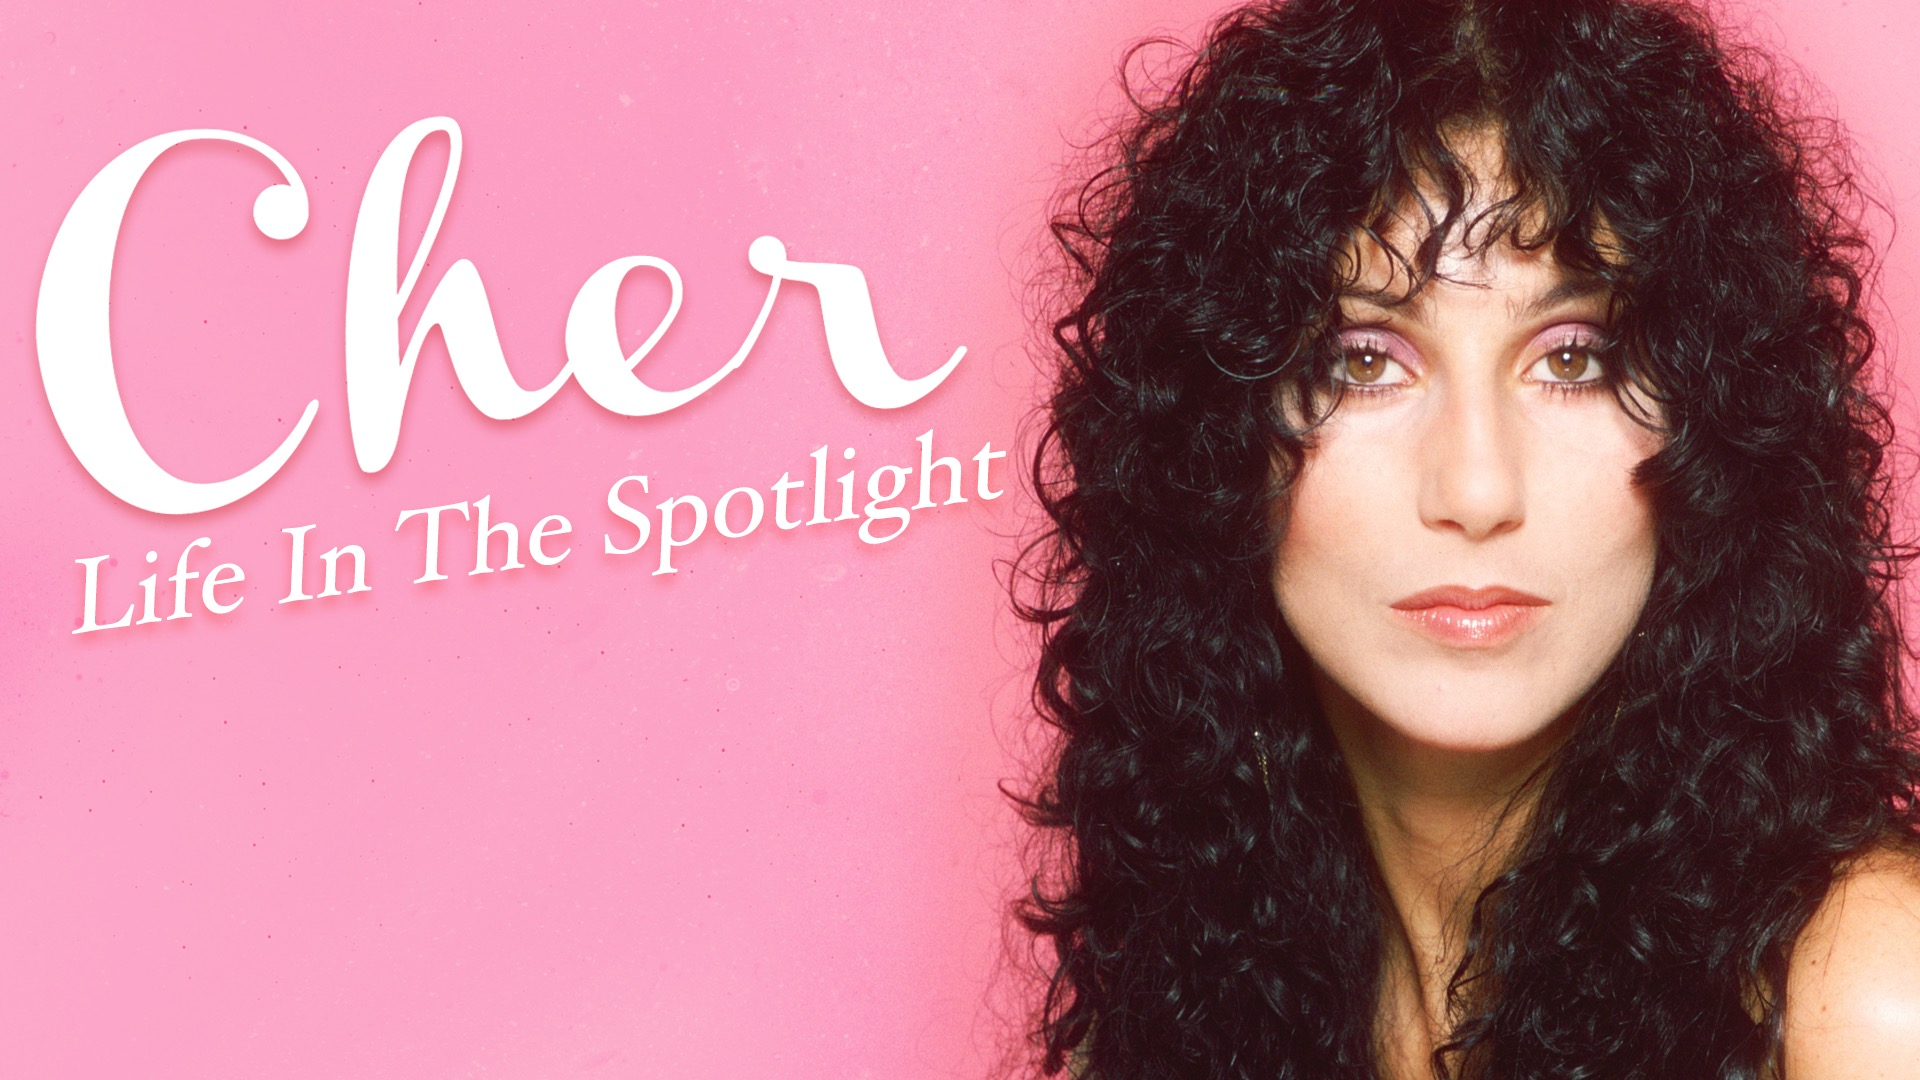 Cher: Life in the Spotlight